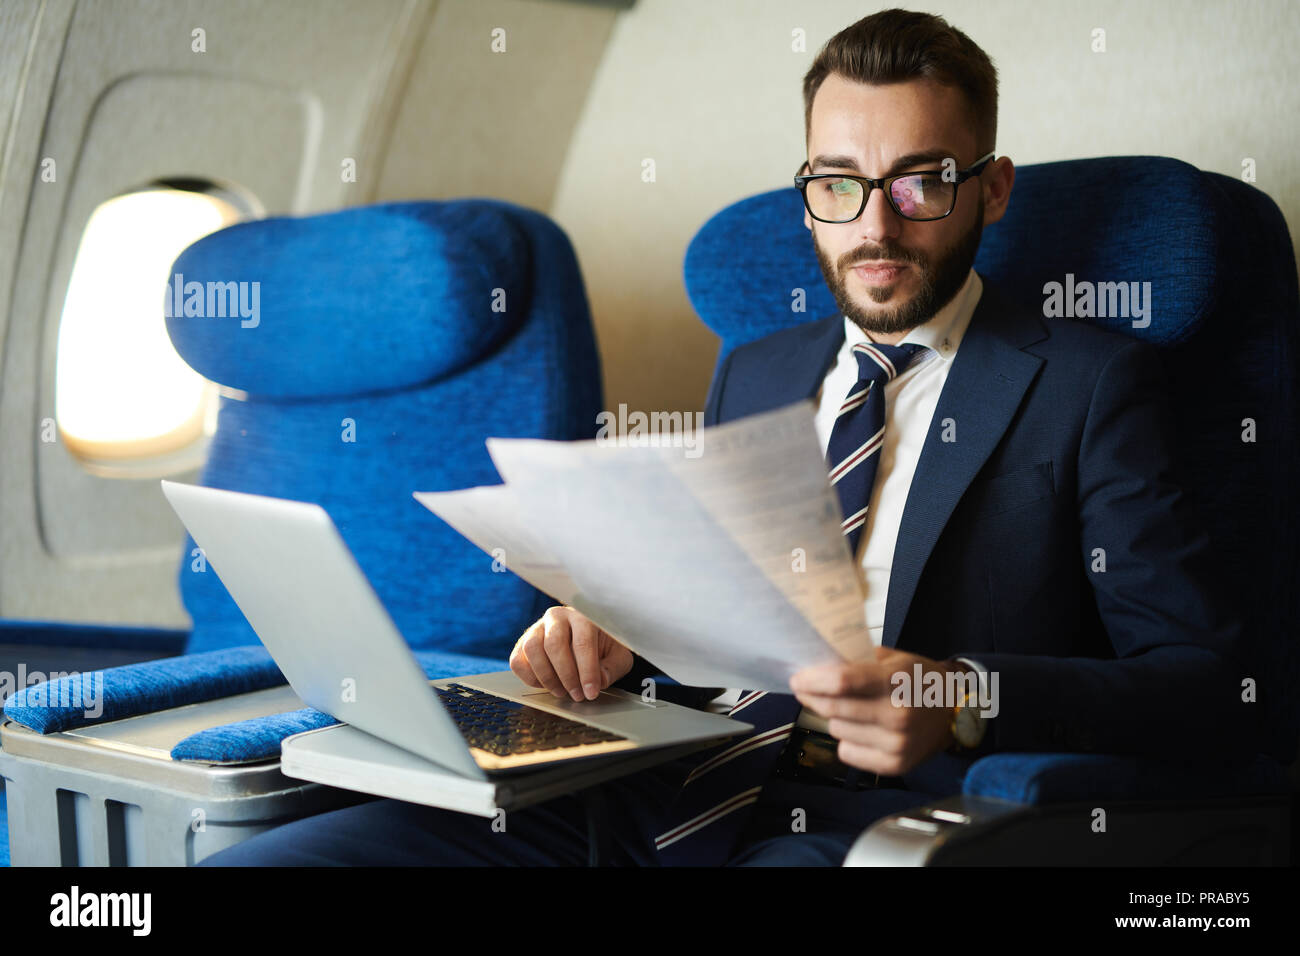 Handsome Business Man Working in Plane - Stock Image